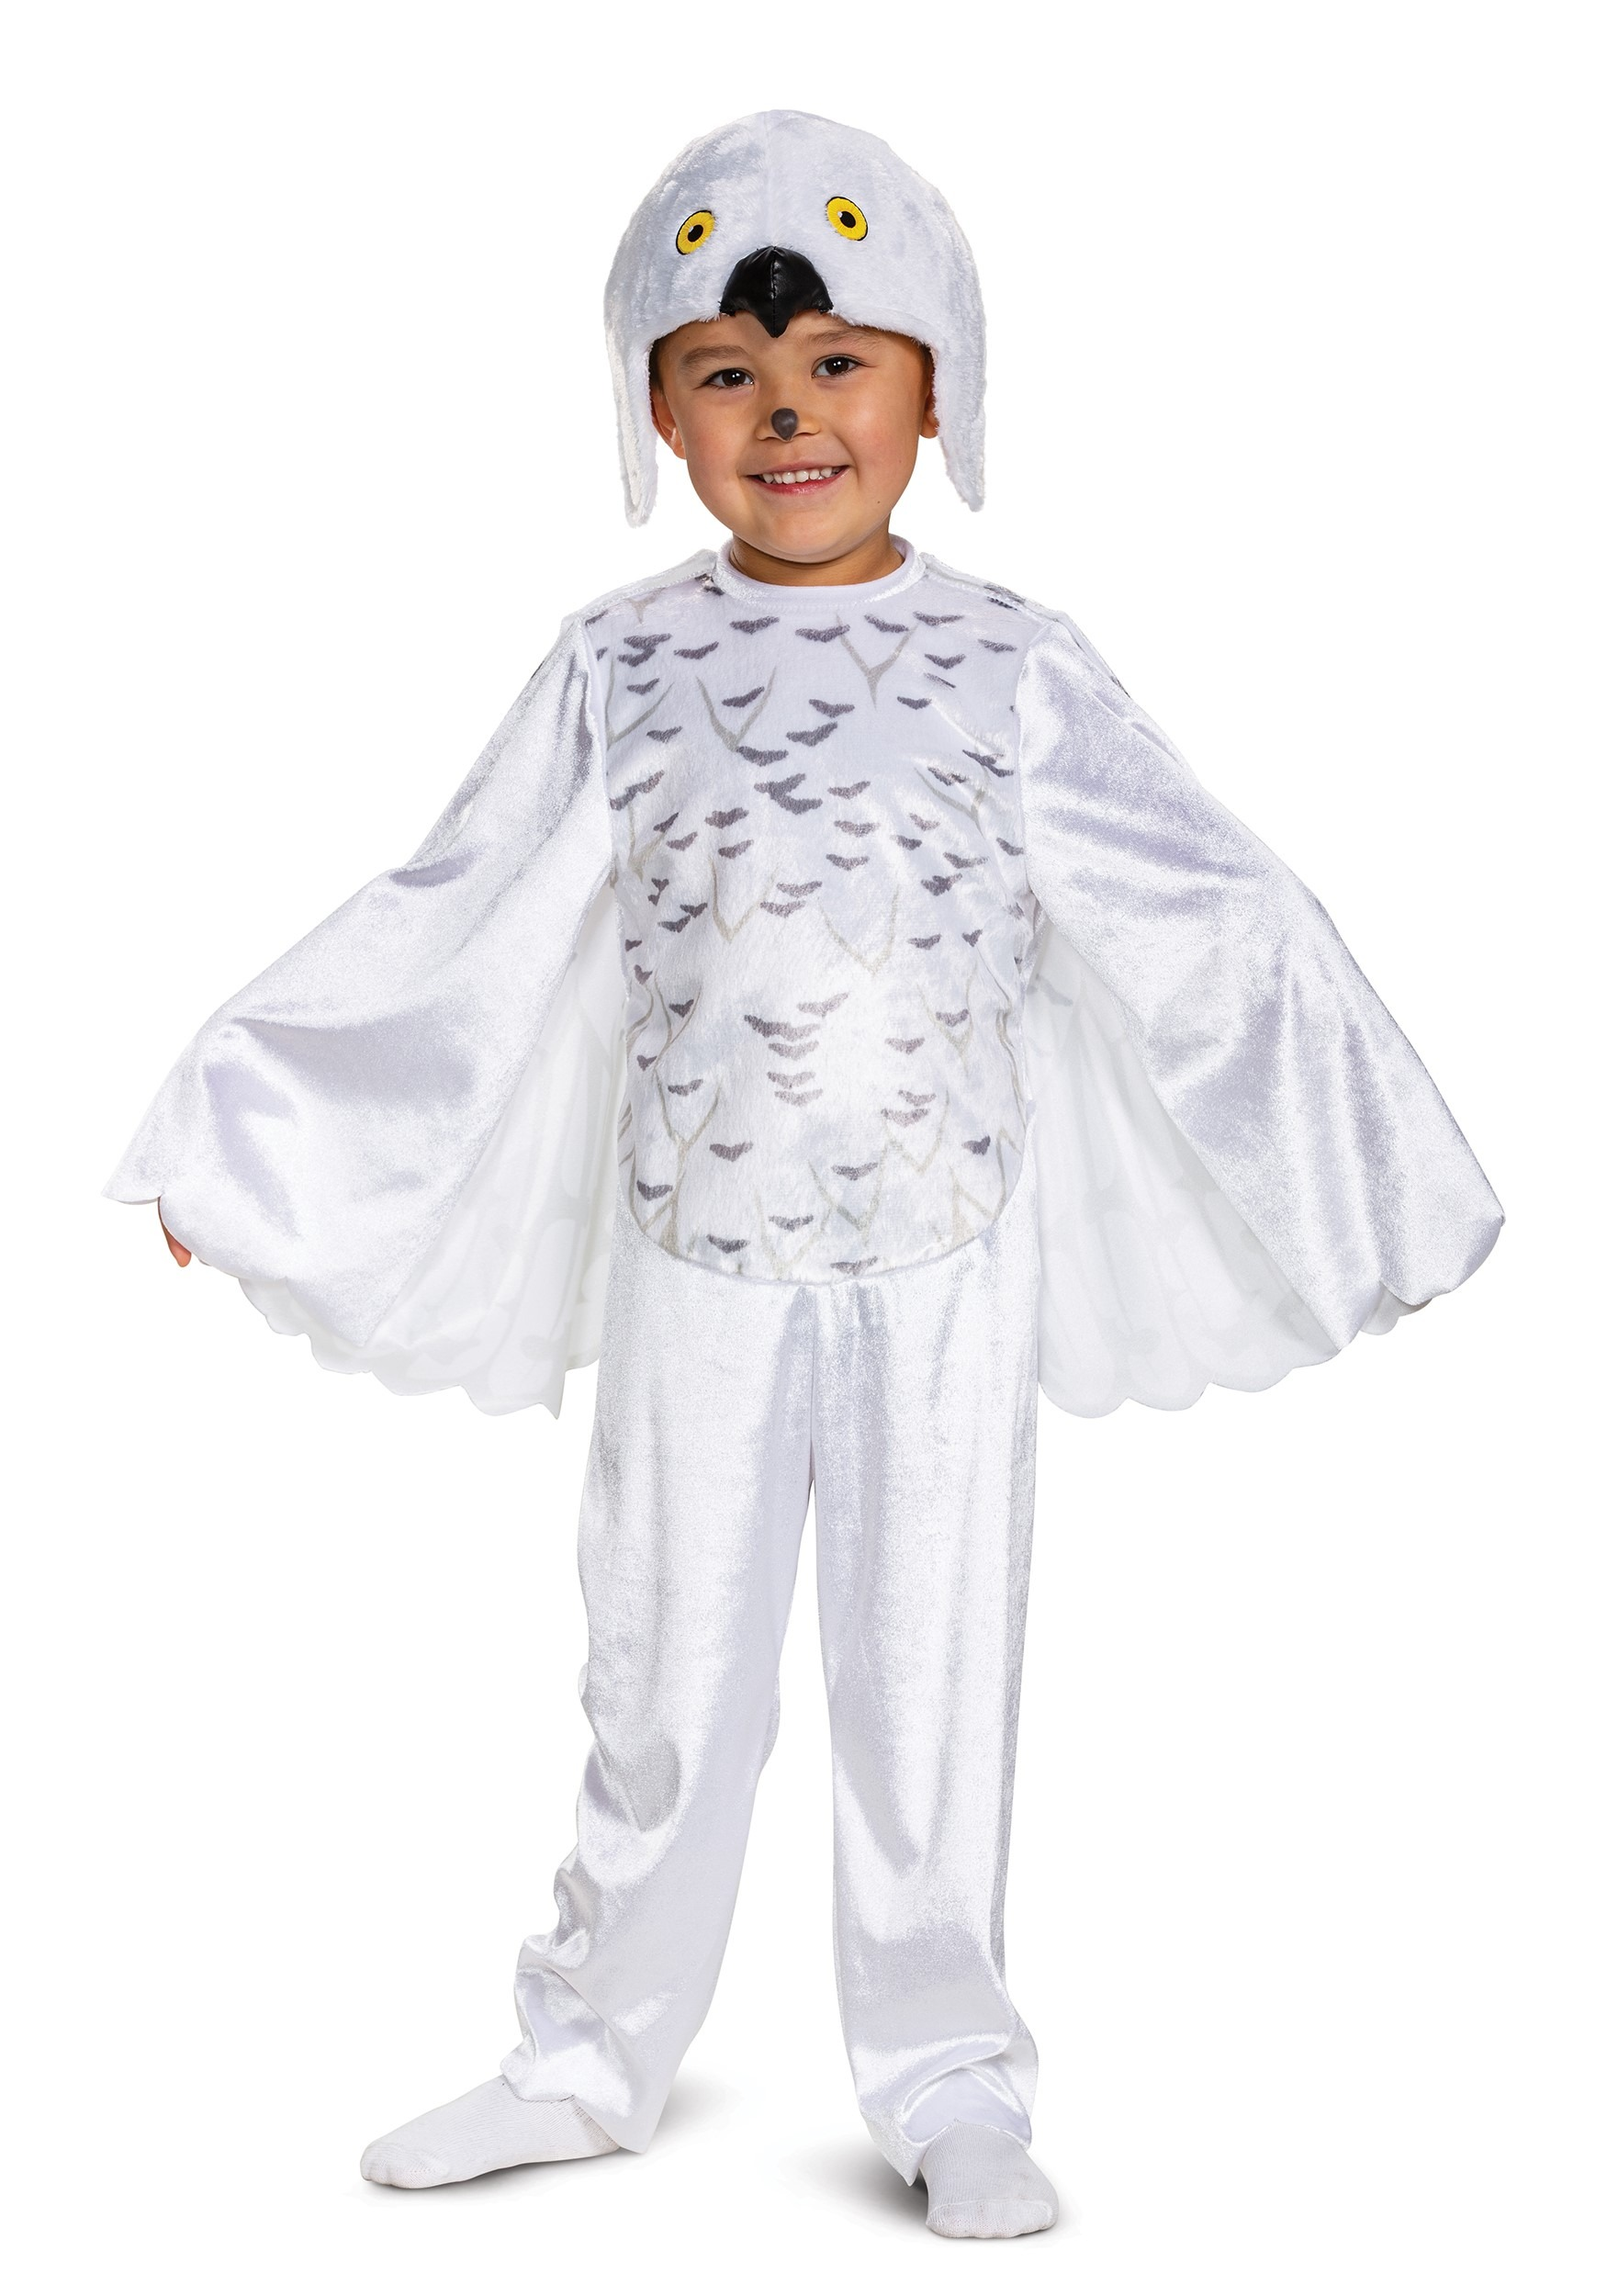 Harry Potter Hedwig Costume for Toddlers